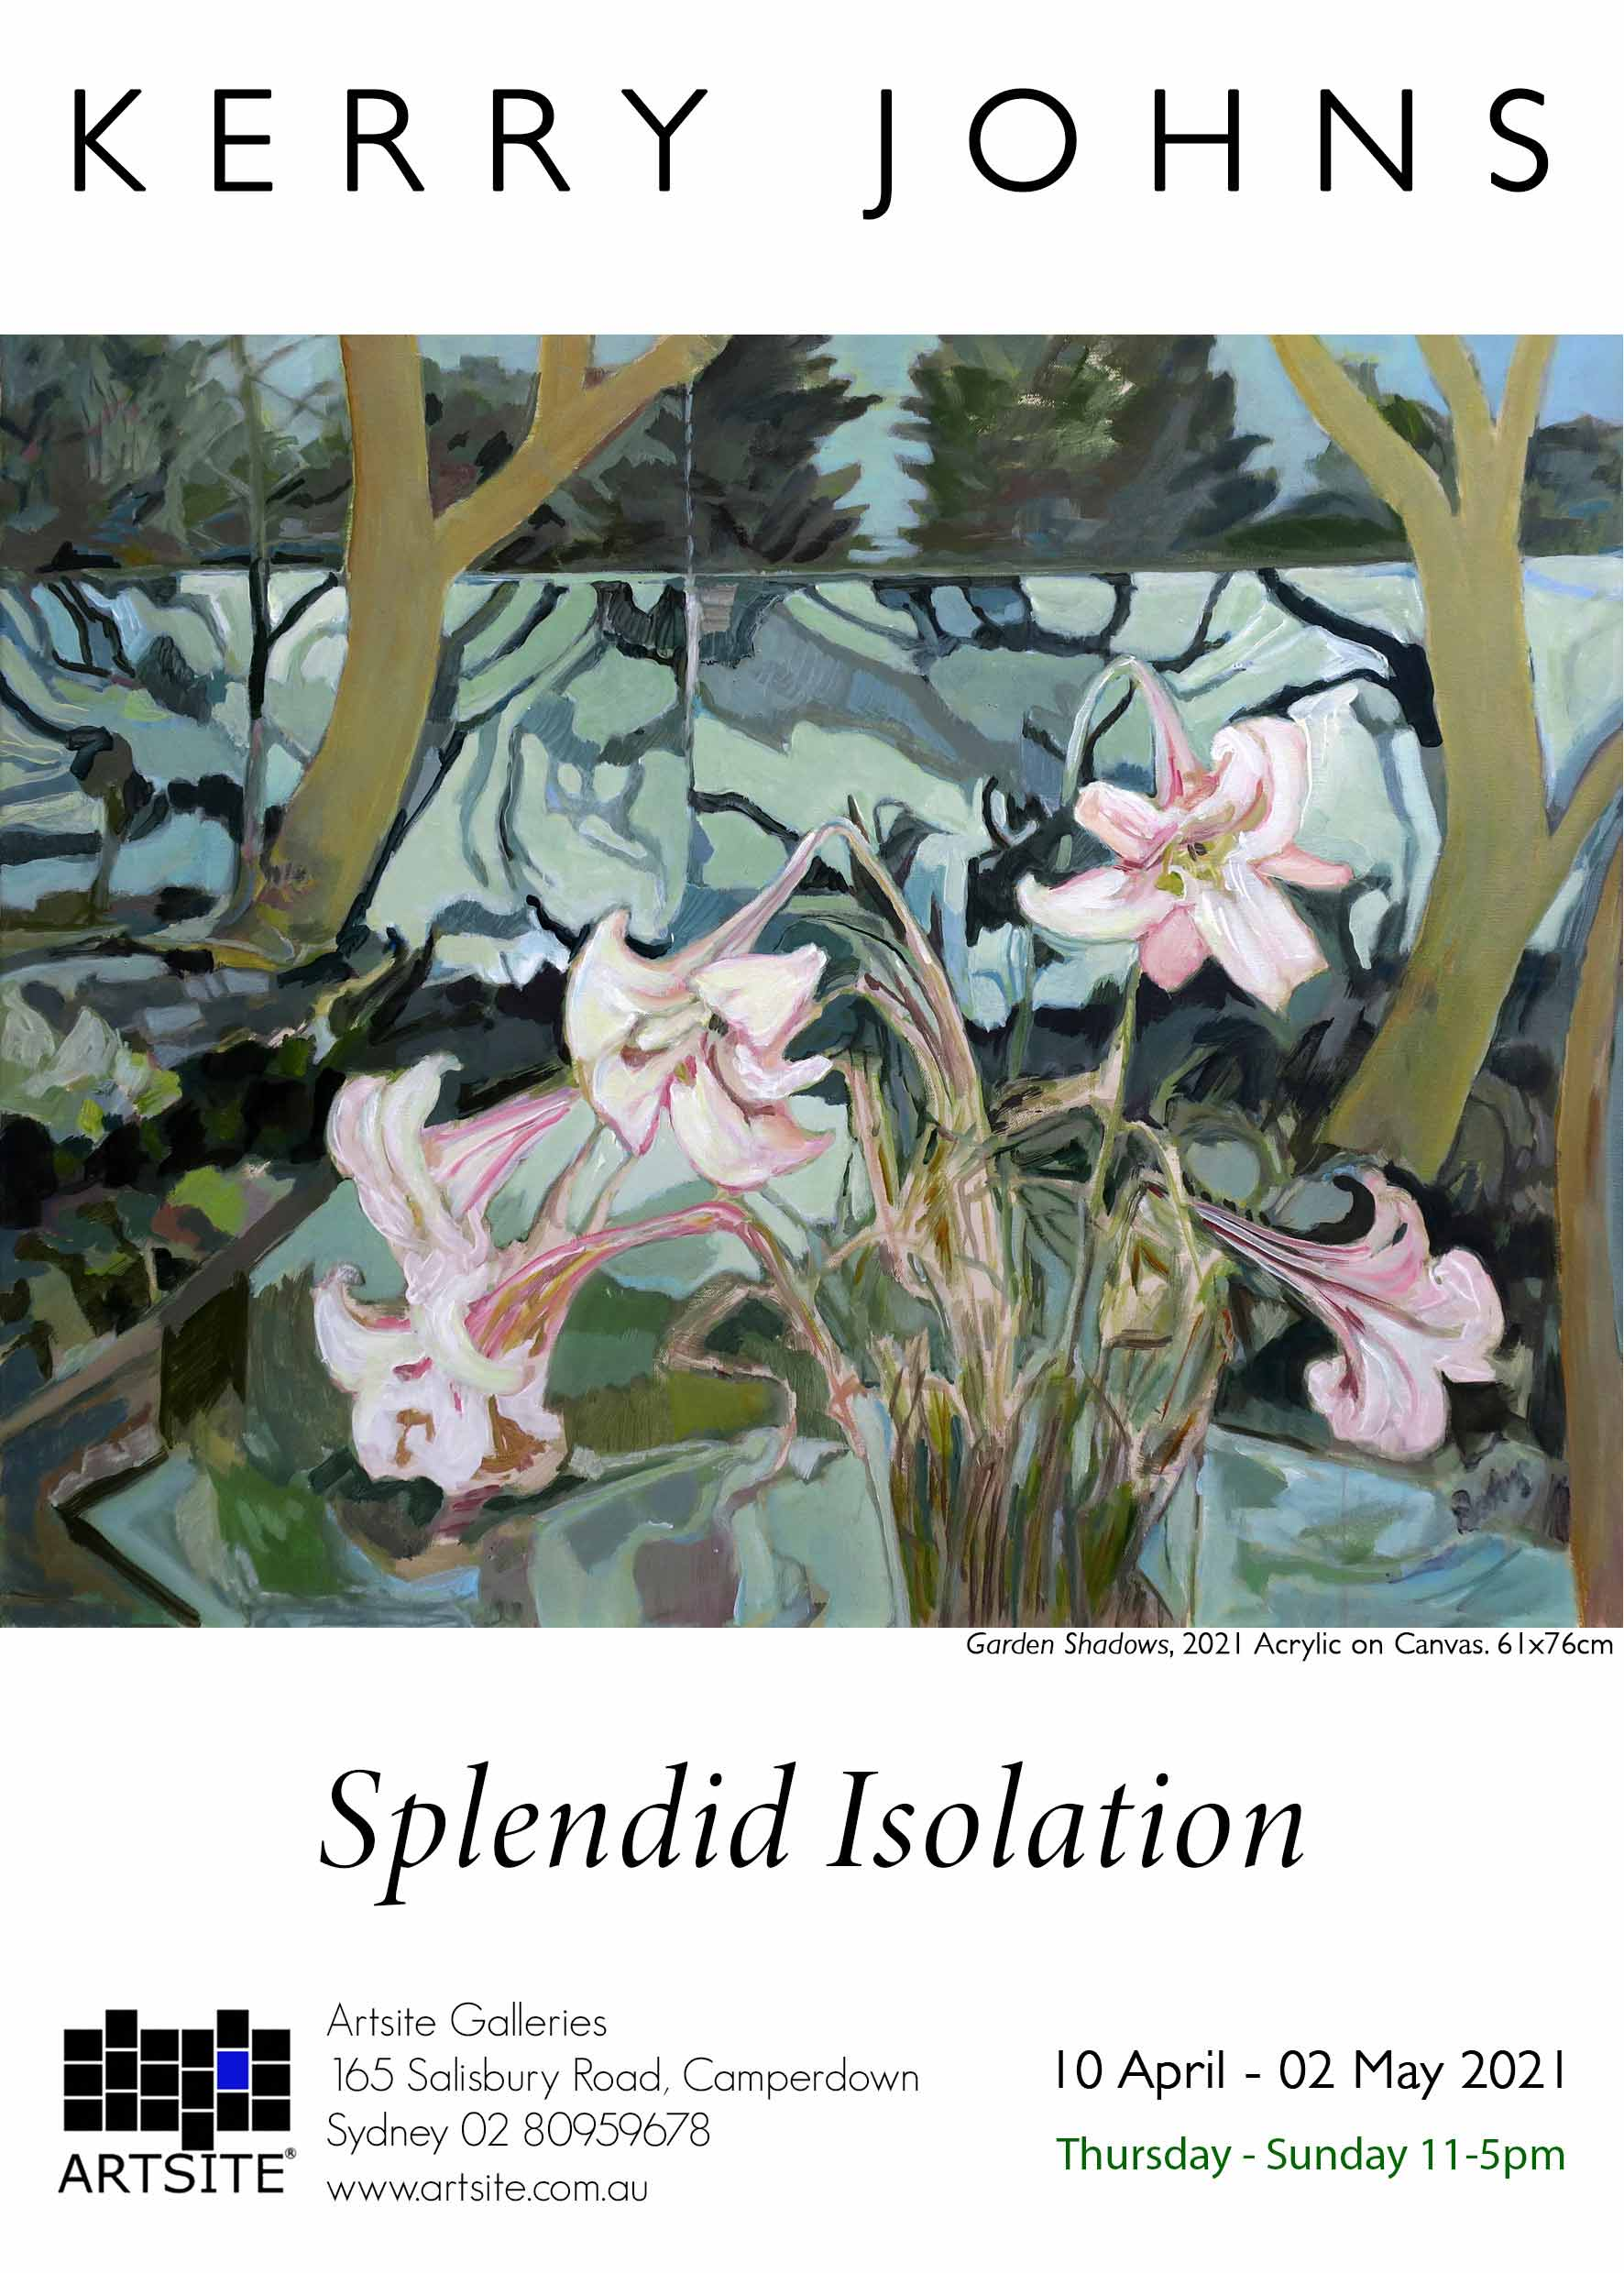 Artsite Galleries | Splendid Isolation | Kerry Johns | Solo Exhibition | Thursday - Sunday 11-5pm | 10 April-02 May 2021.